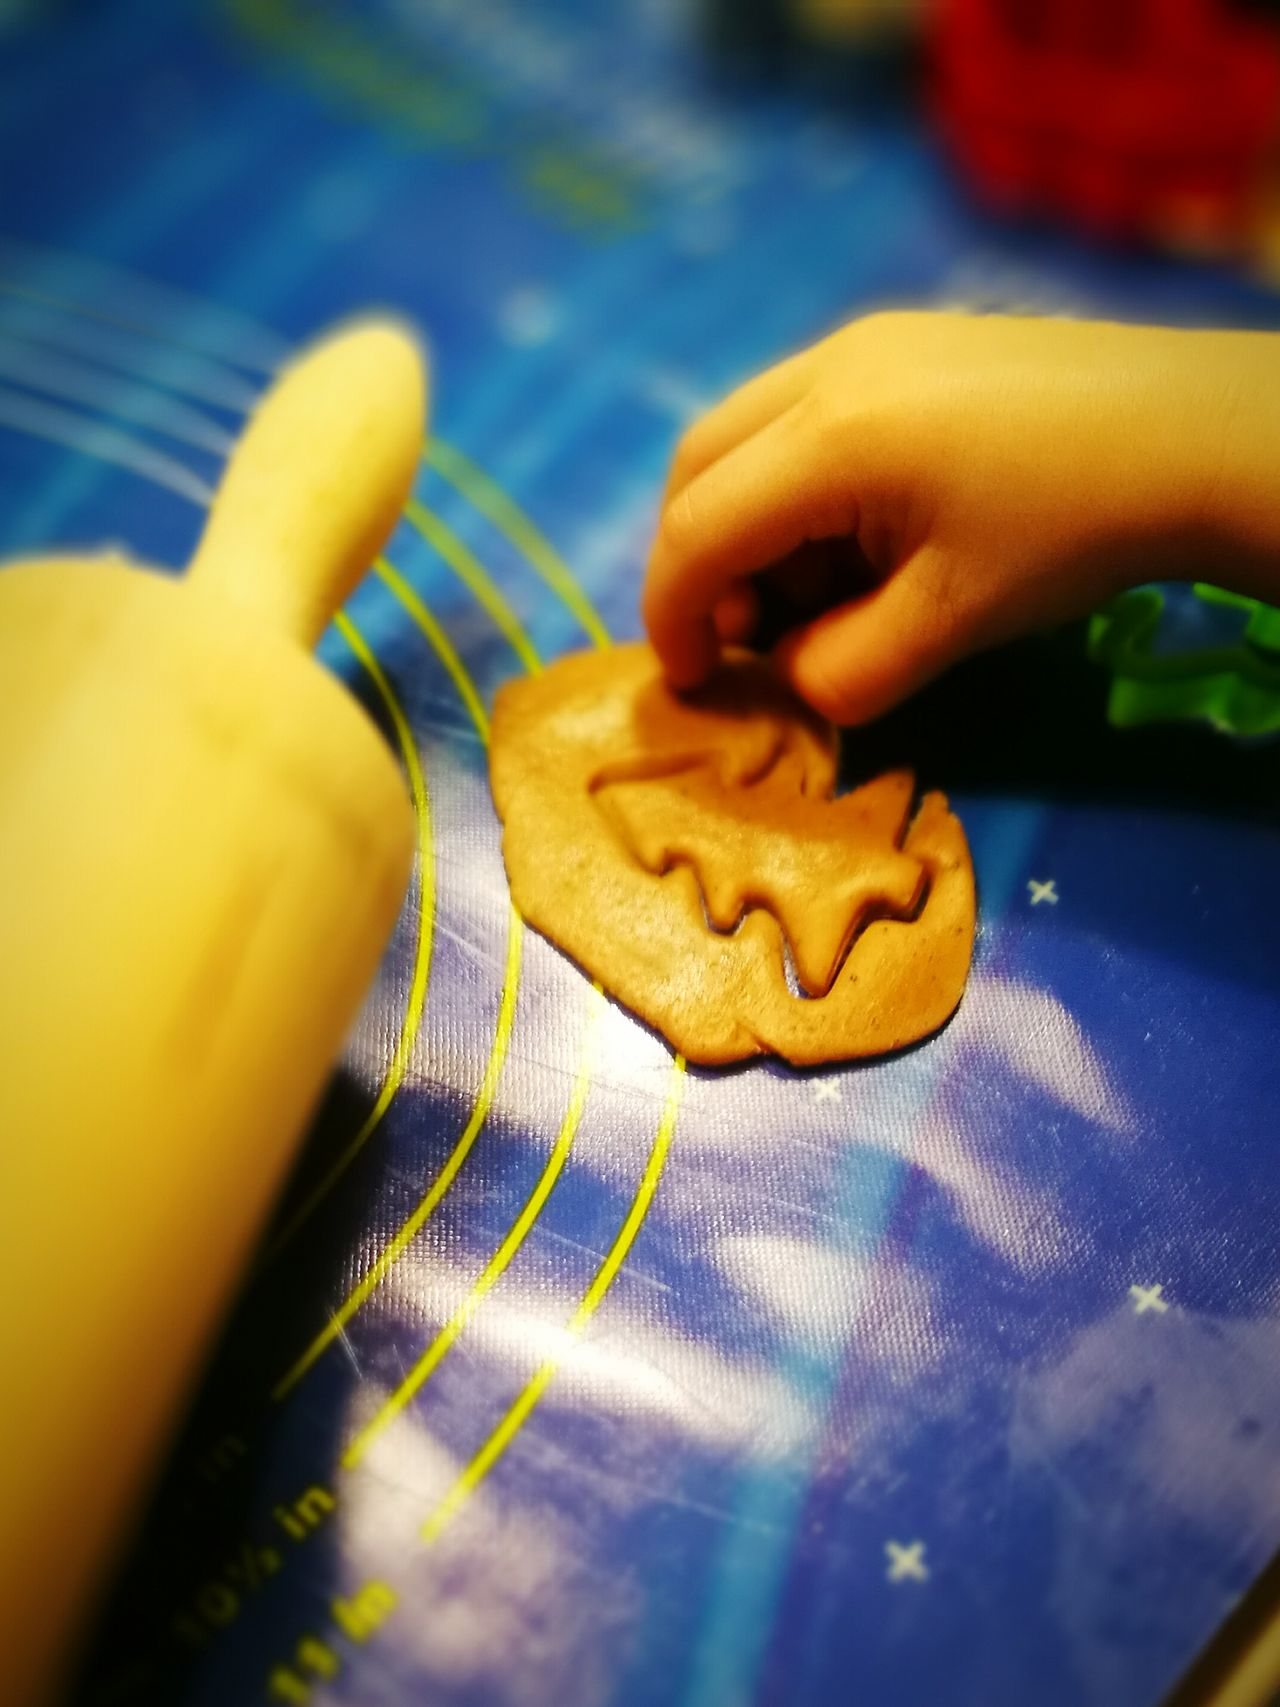 Handmade For You Human Hand Human Body Part Close-up One Person People Baking Cookies Child Fun Time Christmastime With Kids Quality Time